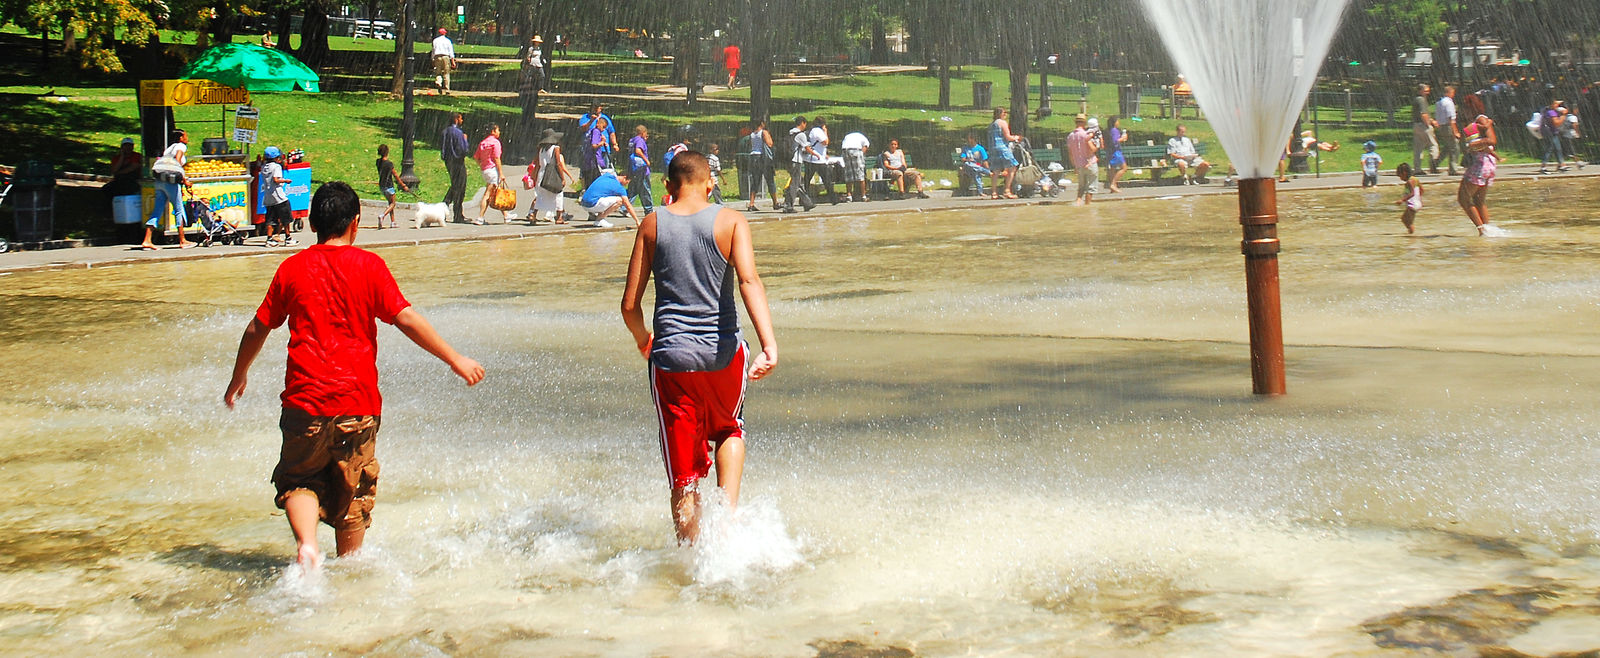 Teenagers play in Frog Pond in the summer.